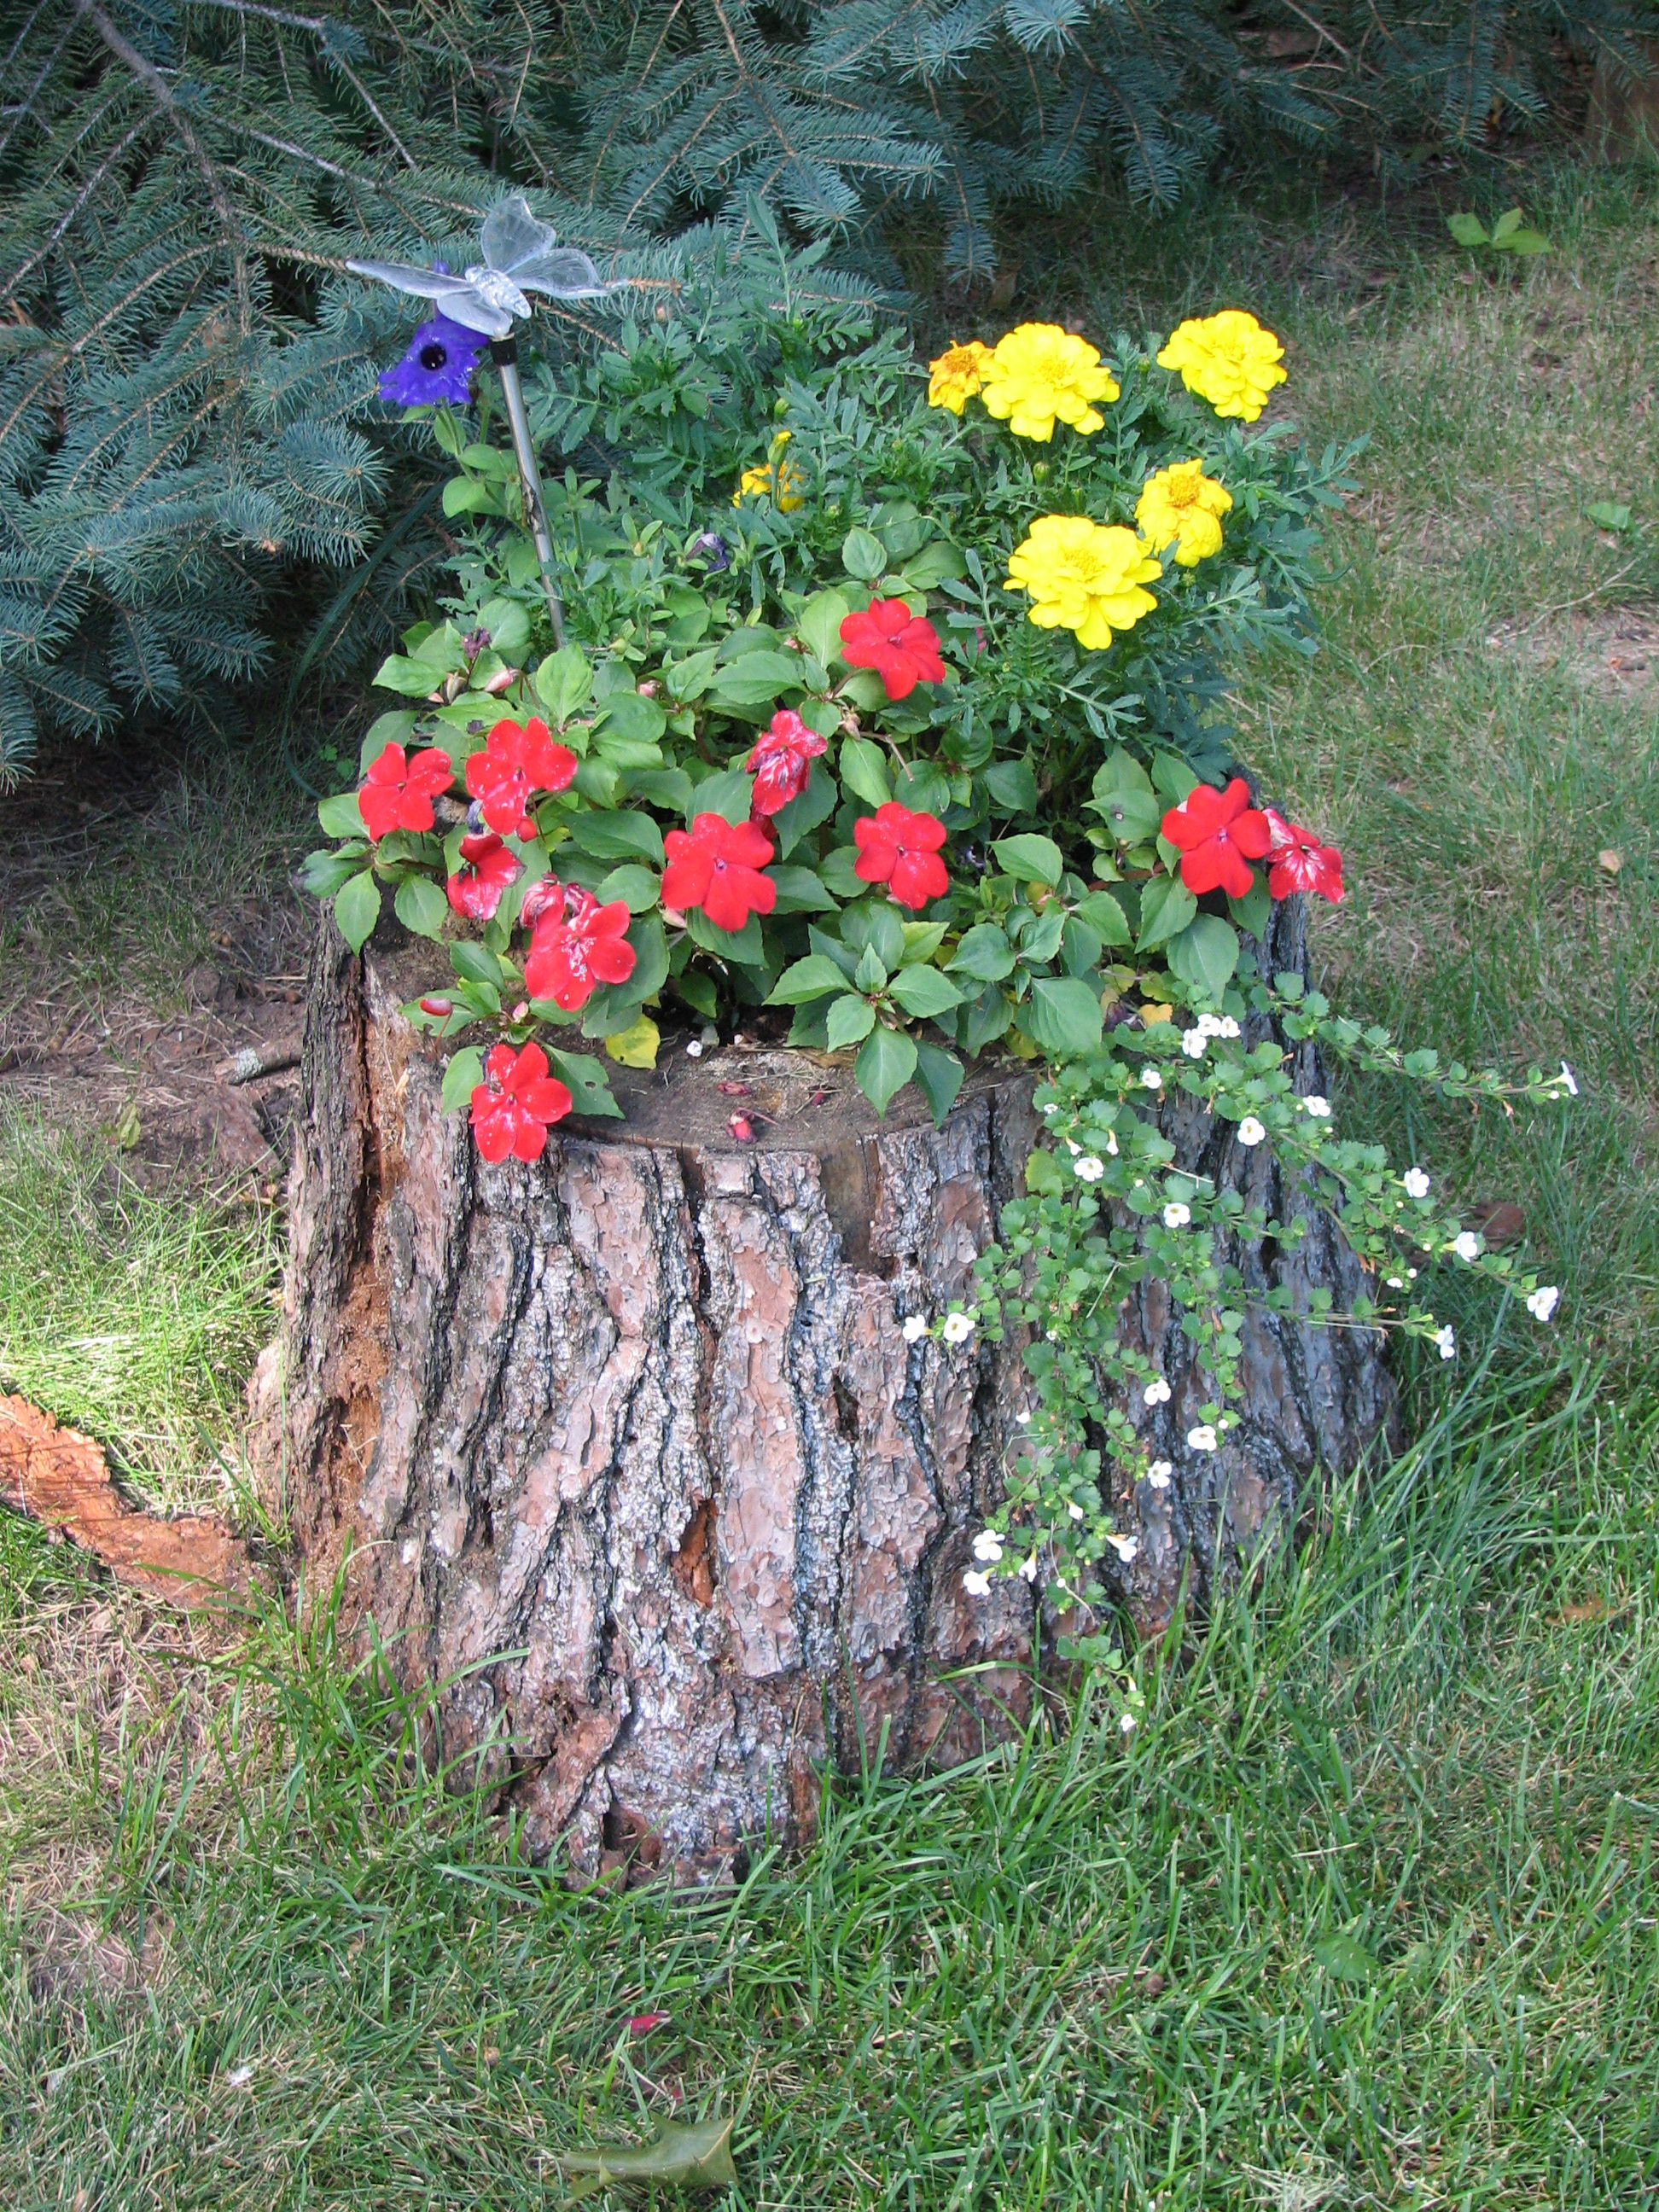 Tree stump flower pot my sister in law 39 s exotic flowers pinterest tree stump flower and - Flowers that grow on tree trunks ...